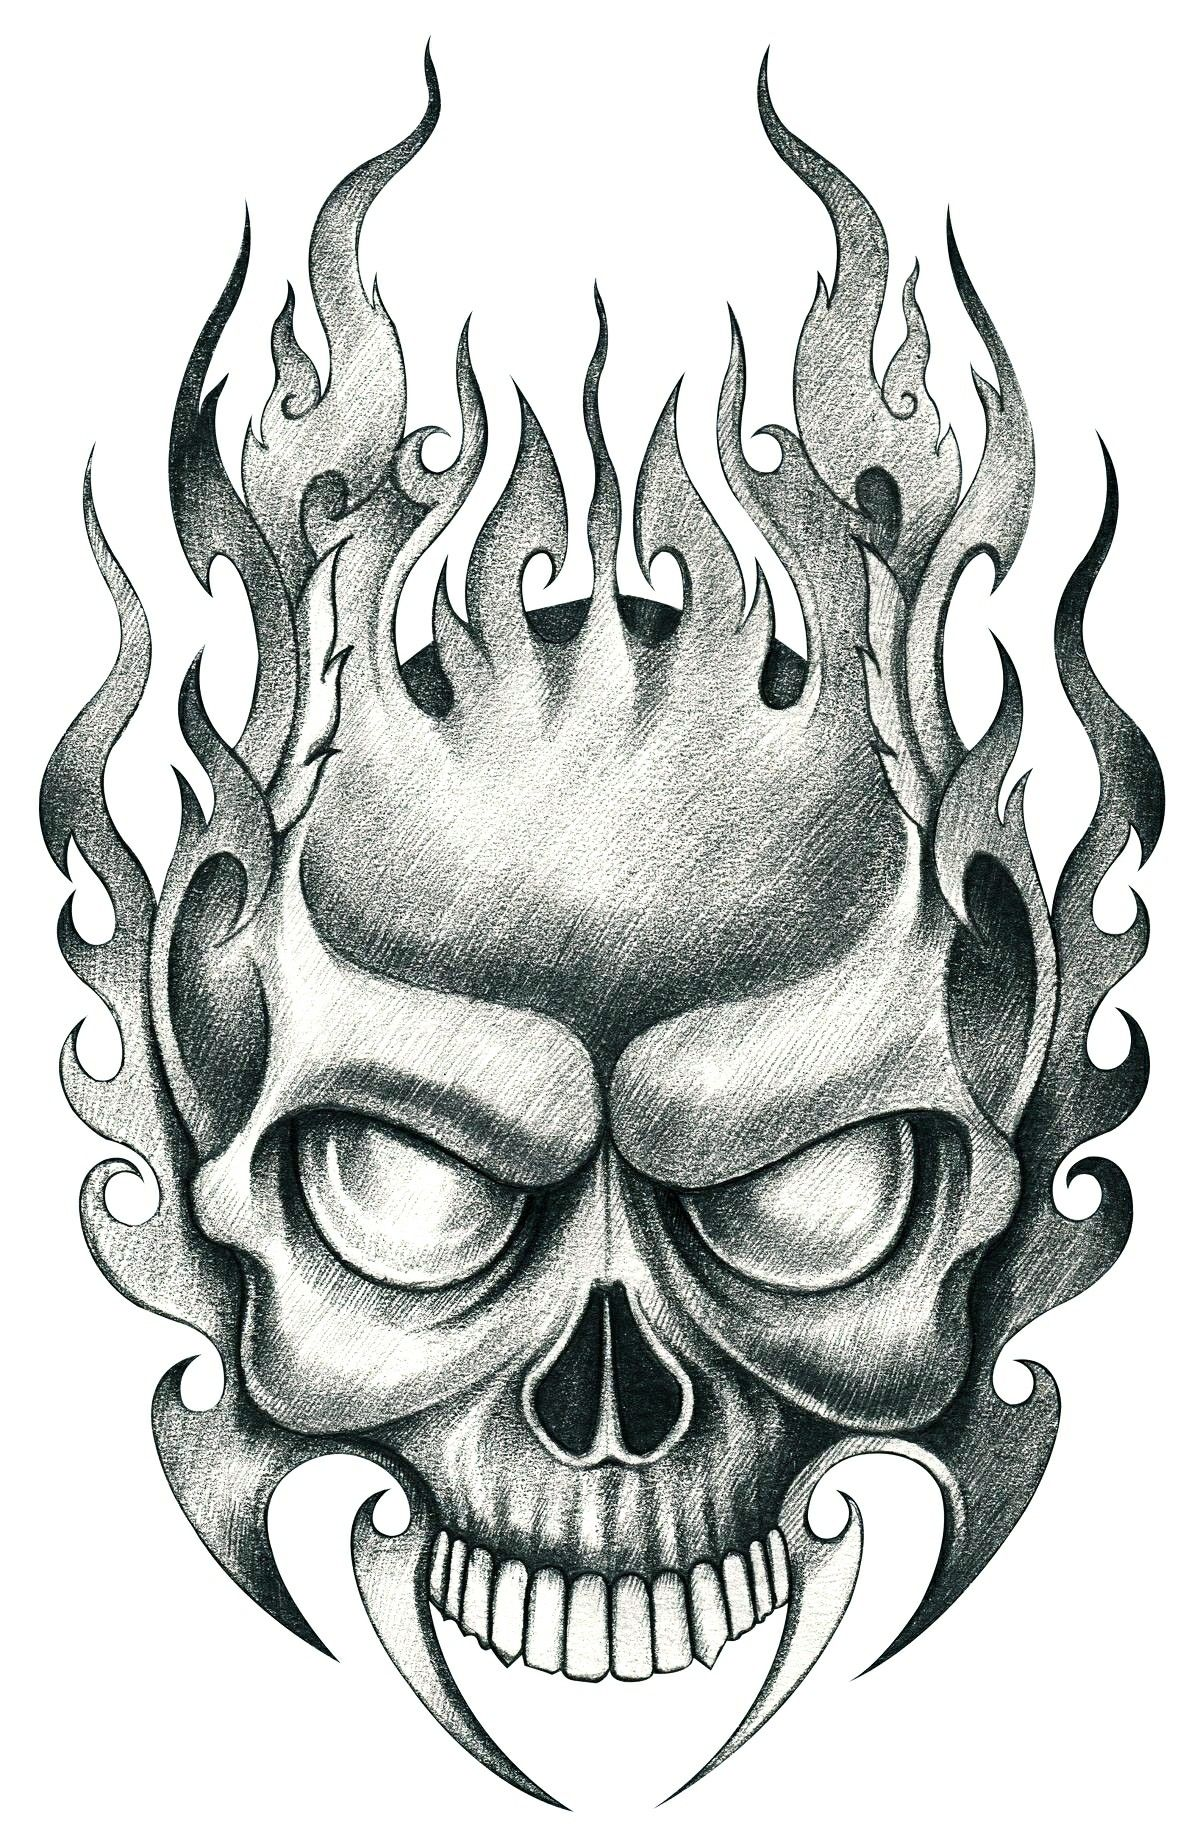 Discussion on this topic: 70 Grim Reaper Tattoos For Men – , 70-grim-reaper-tattoos-for-men/